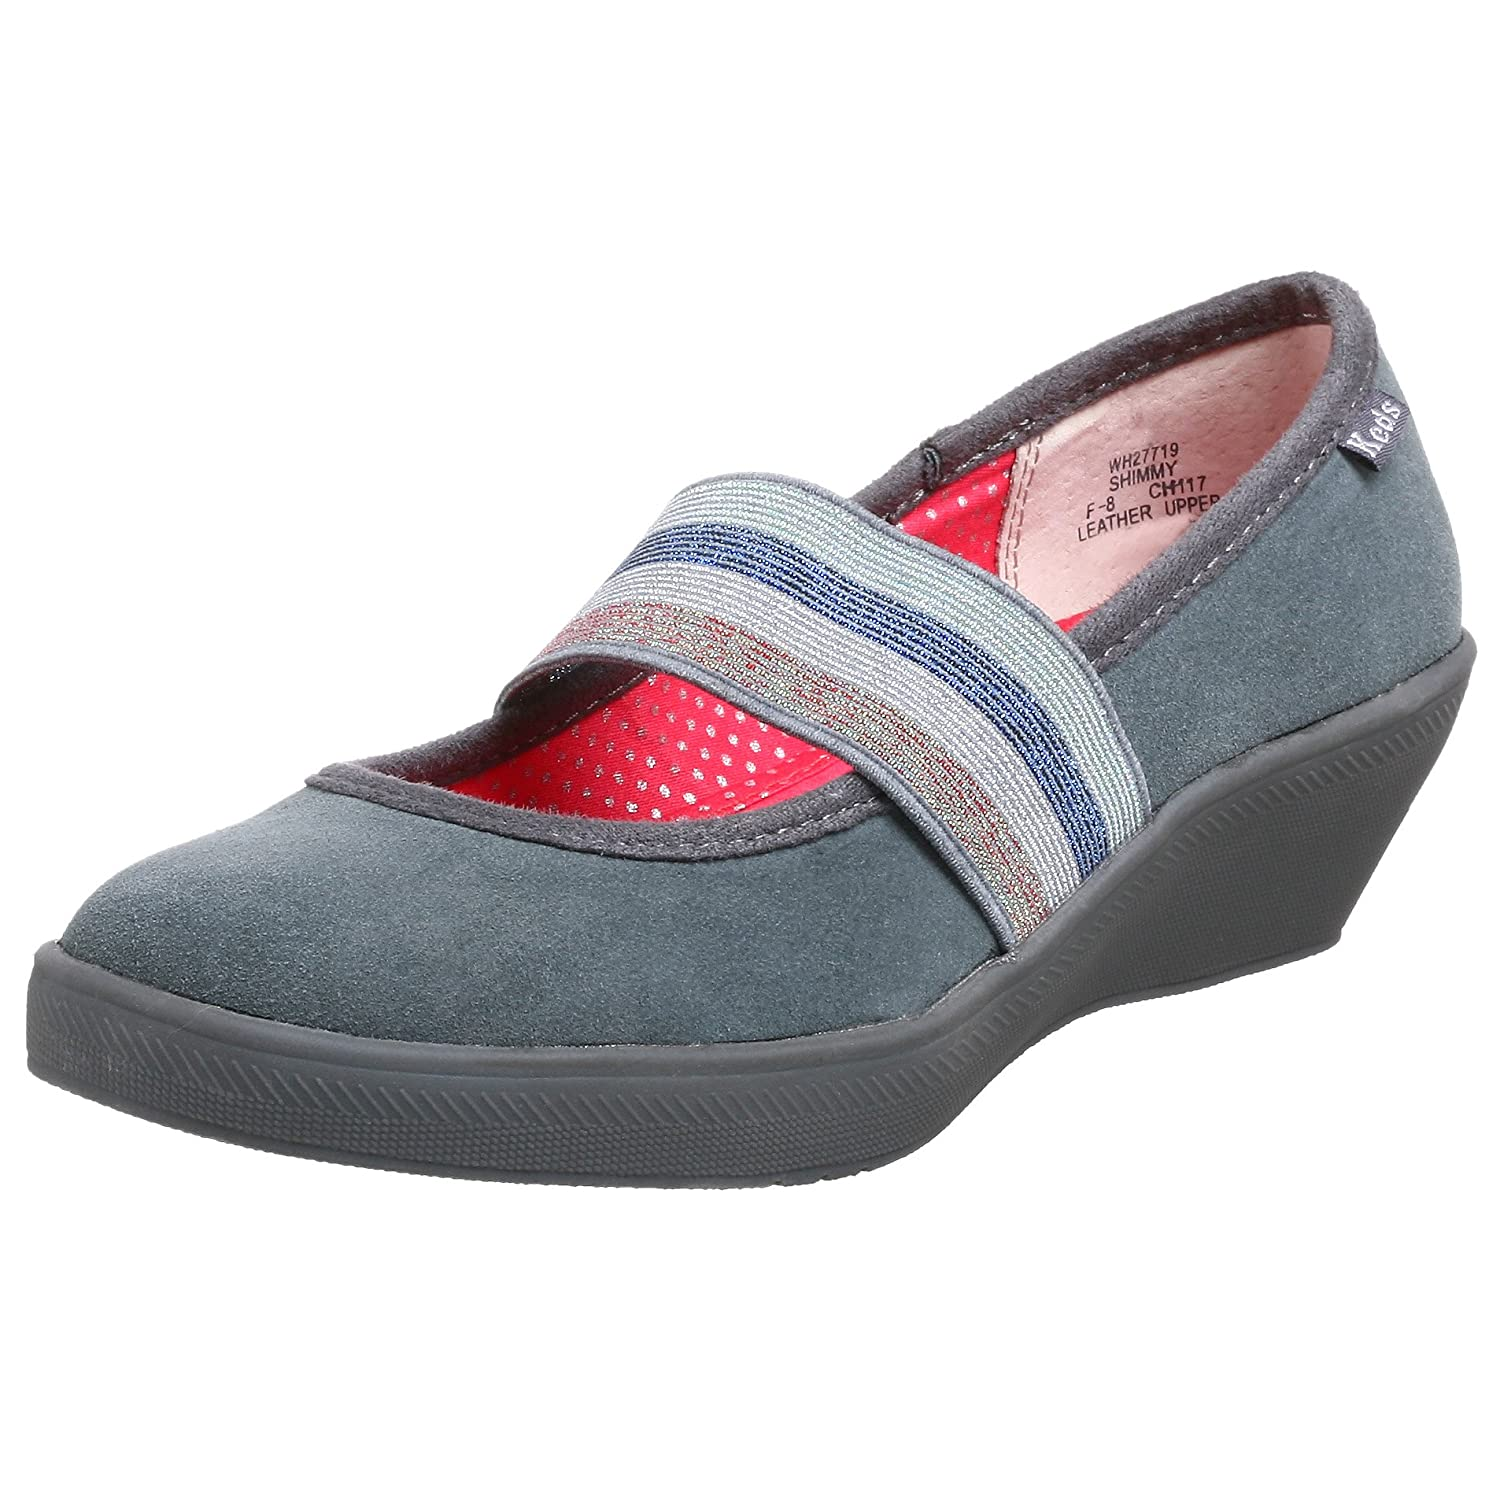 Keds Women&#039;s Shimmy Wedge - Free Overnight Shipping &amp; Return Shipping: Endless.com from endless.com